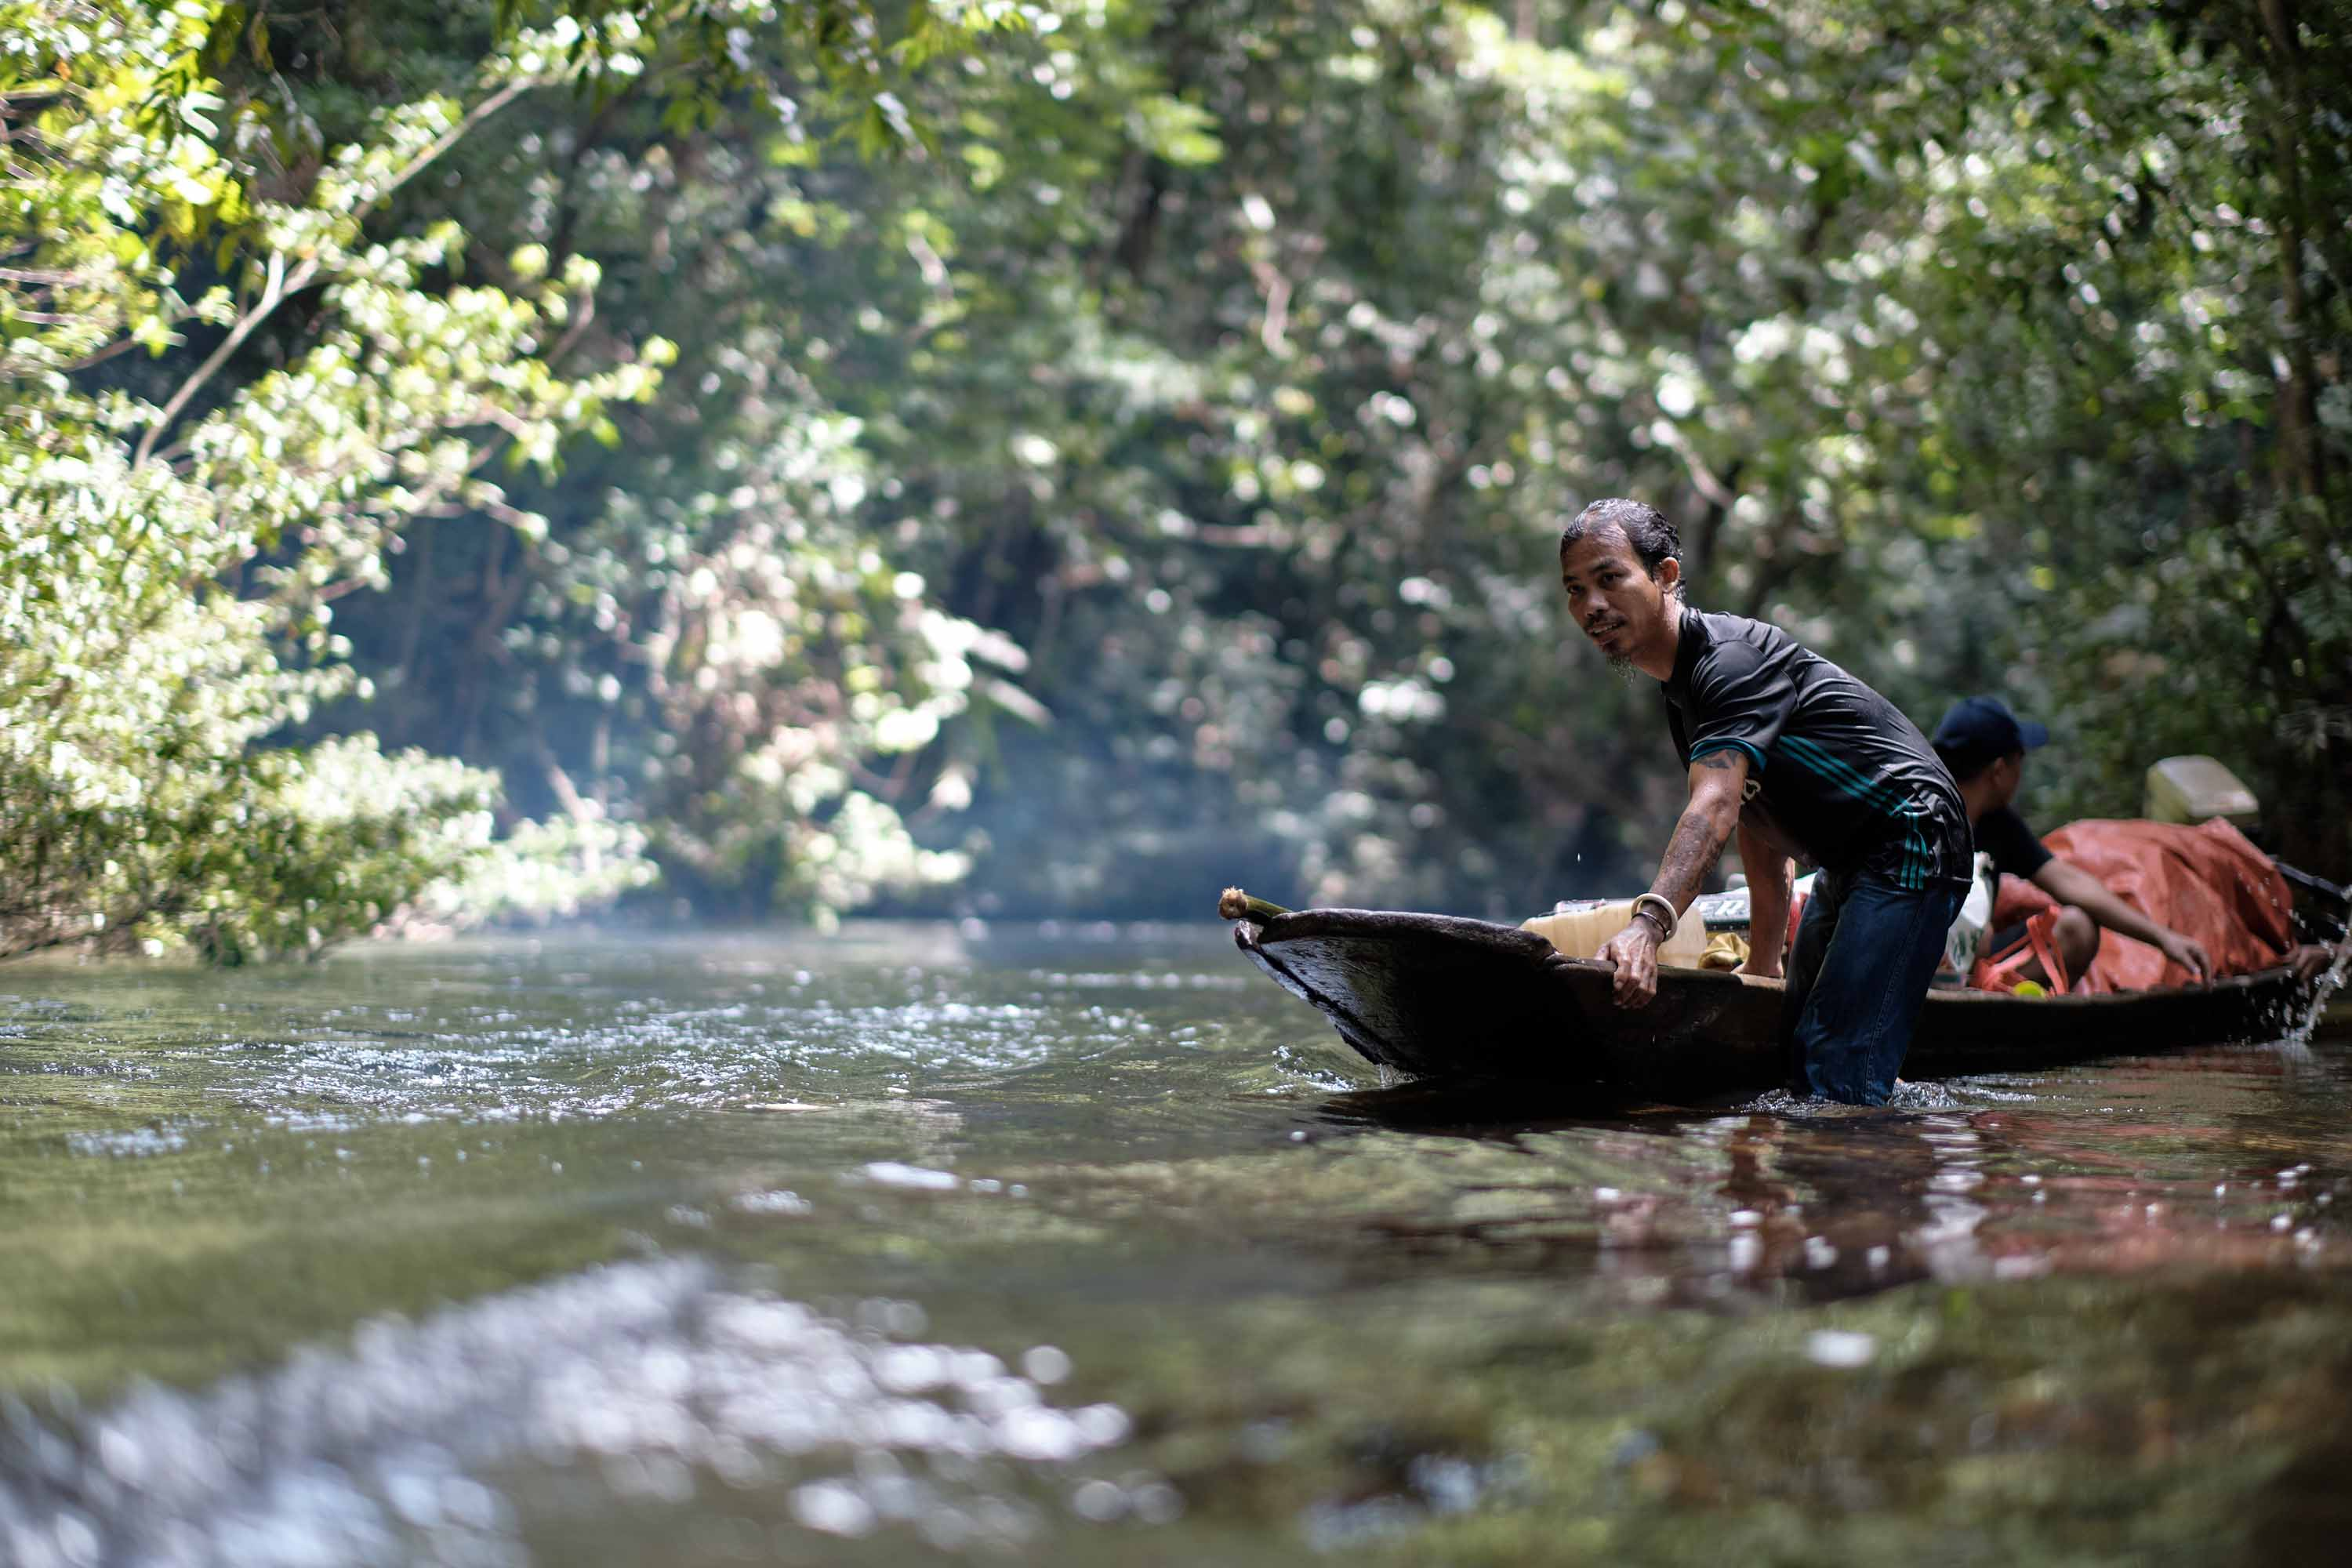 A man in black shirt and jeans pushes a canoe from a river bank in the middle of a dense forest.